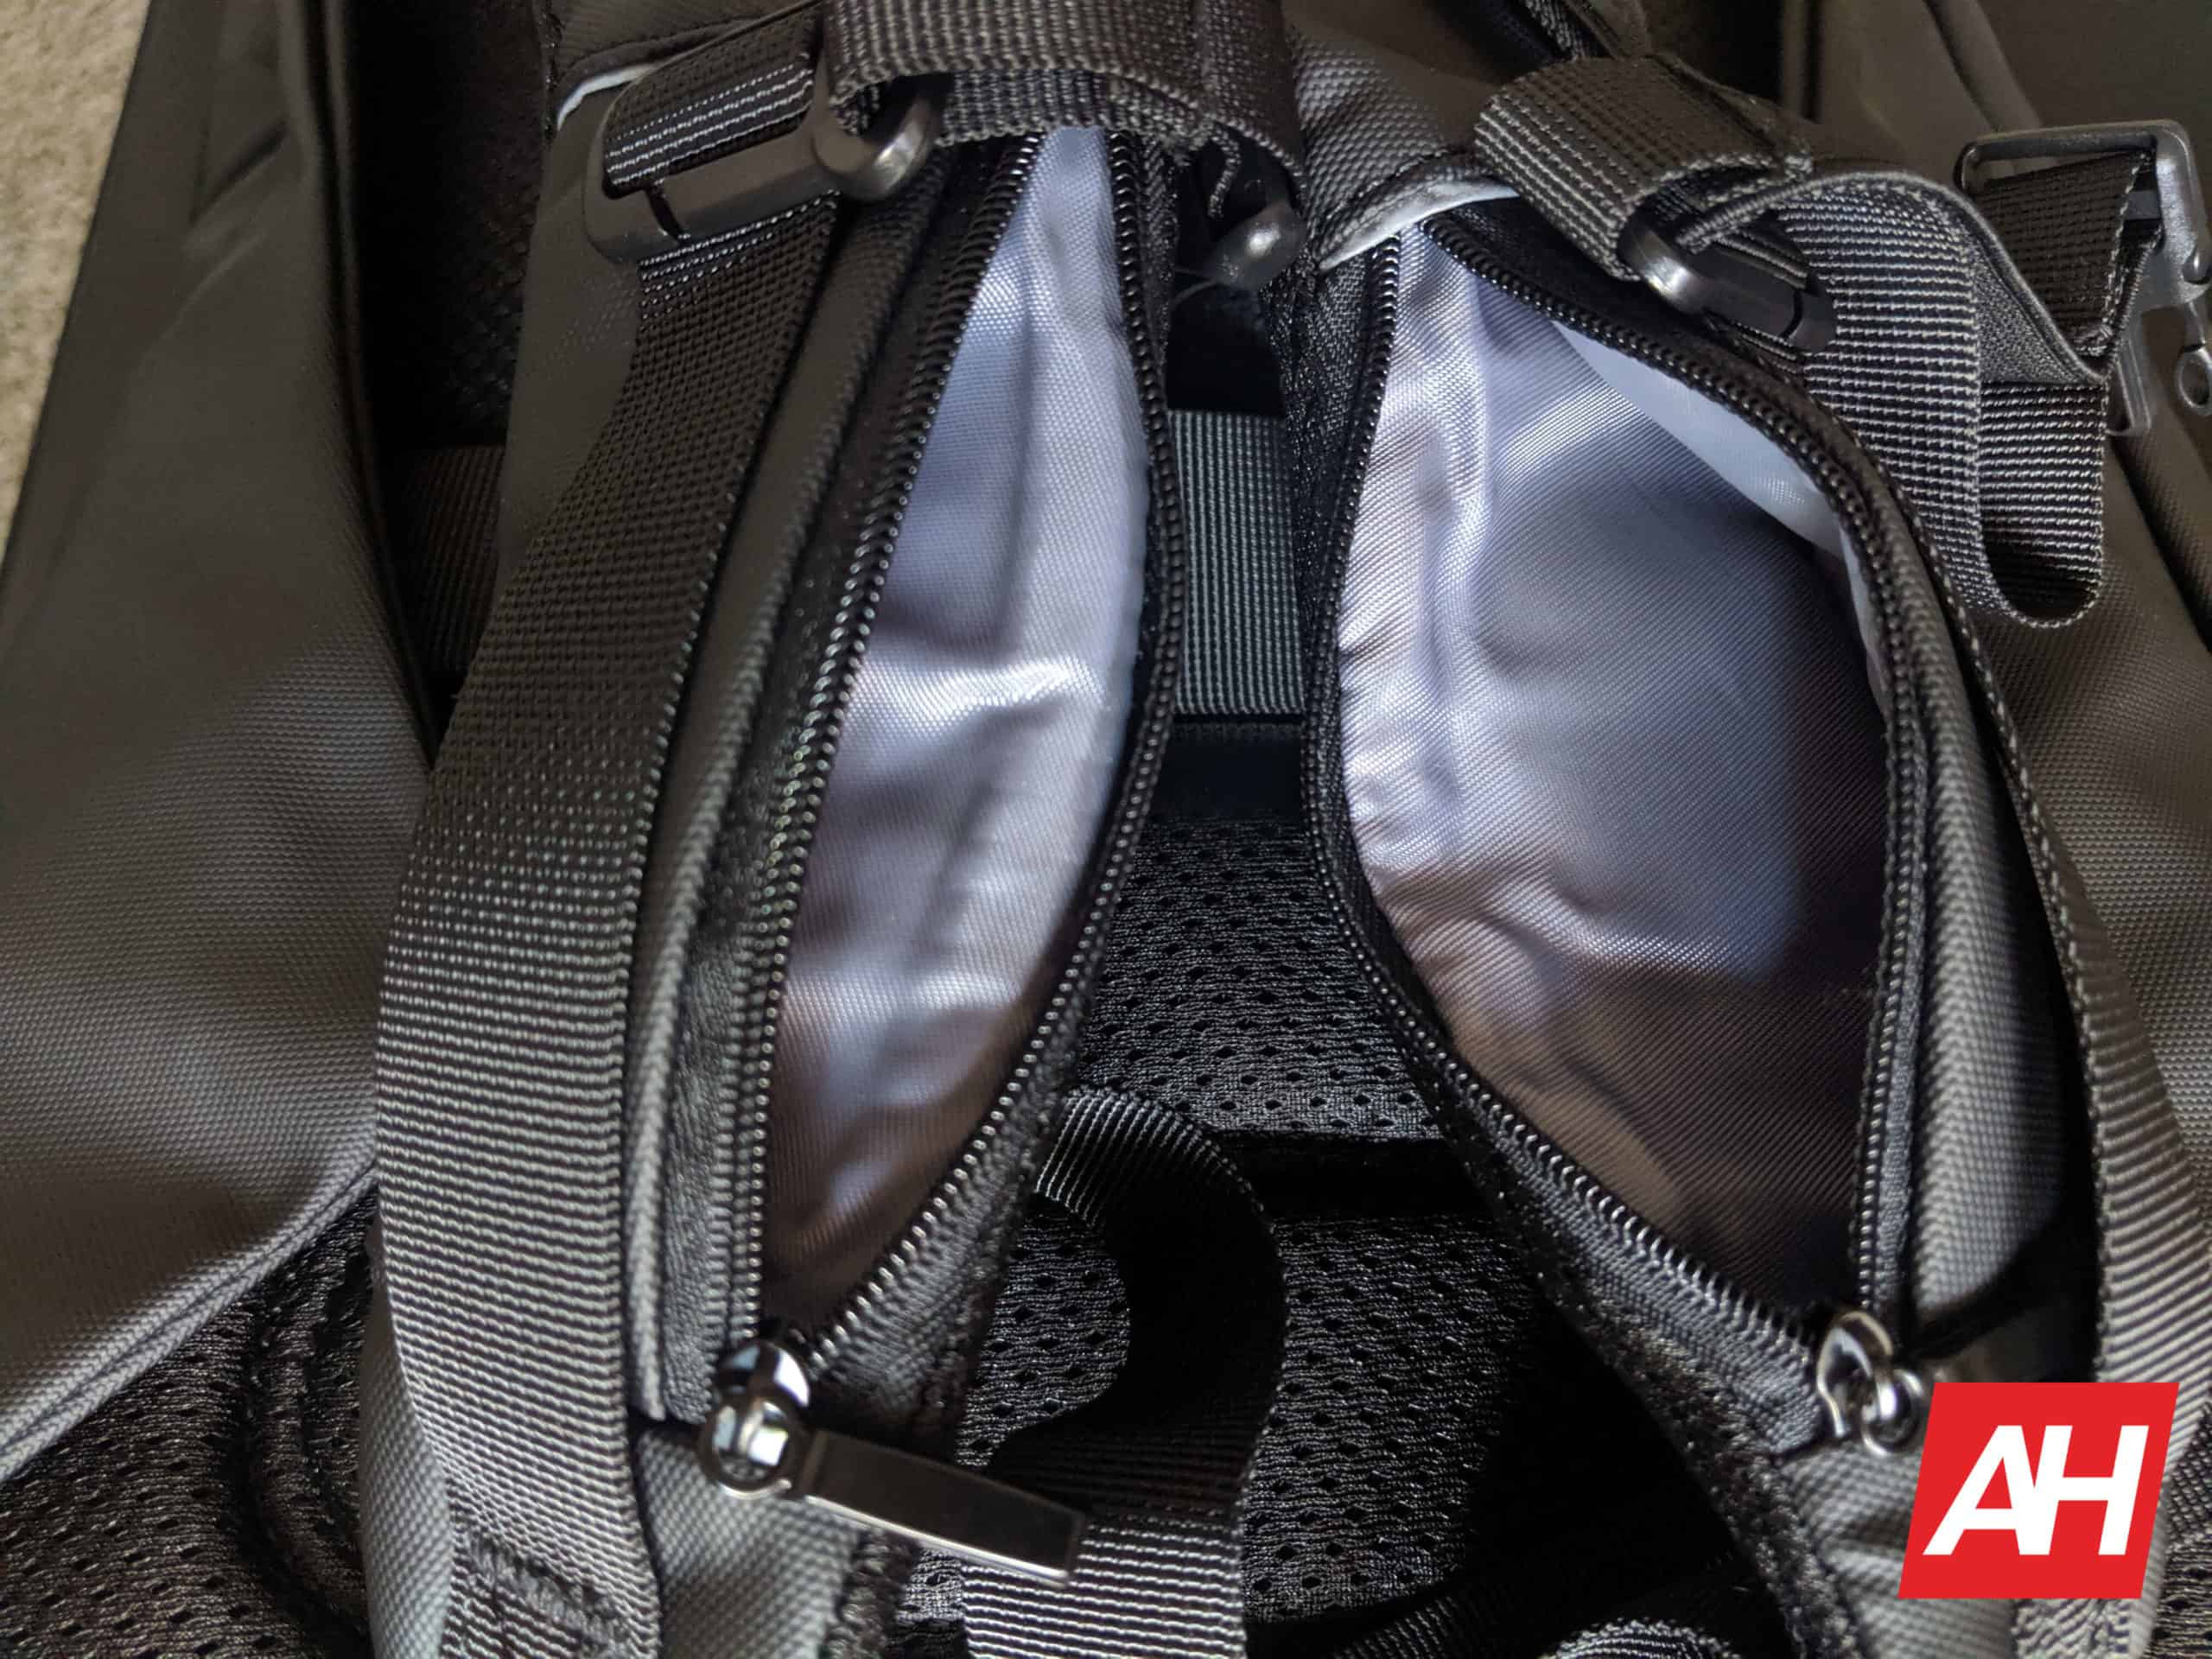 Nayo Smart Almighty Backpack Review 6